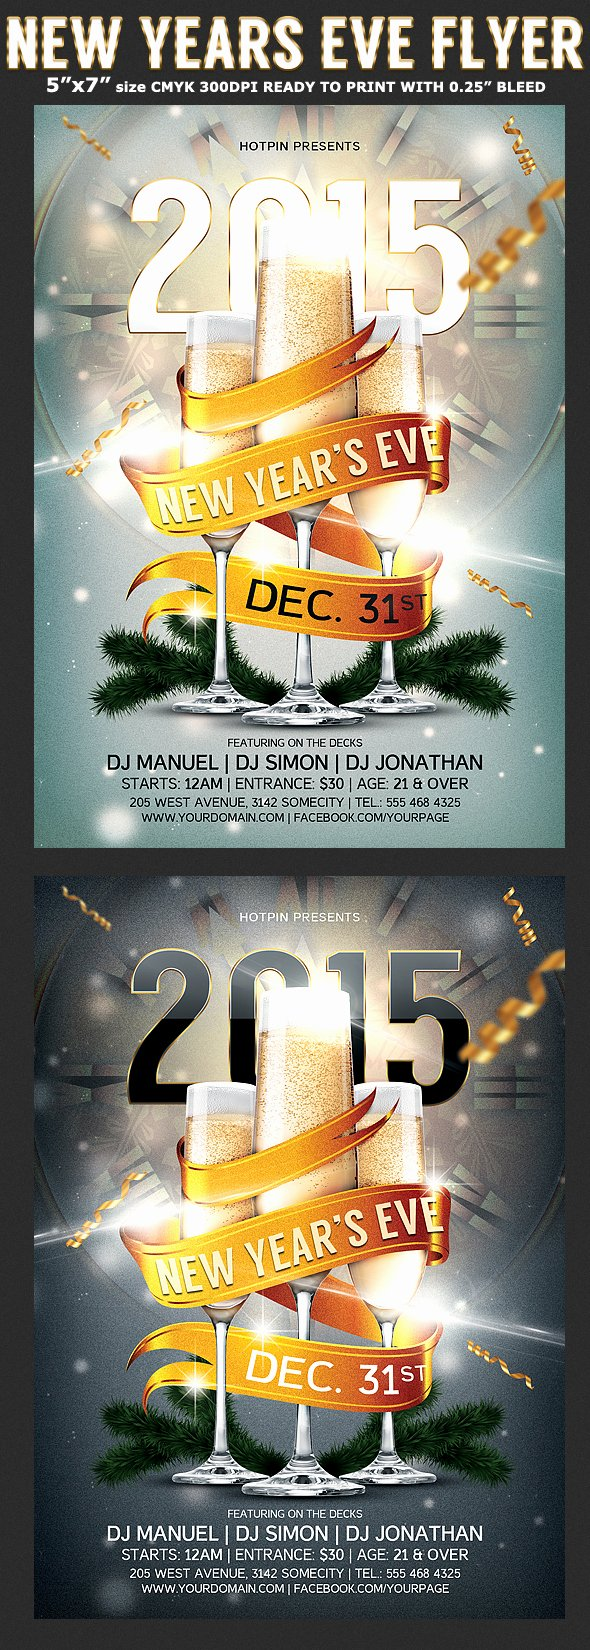 New Year Flyers Template Inspirational New Years Eve Party Flyer Template